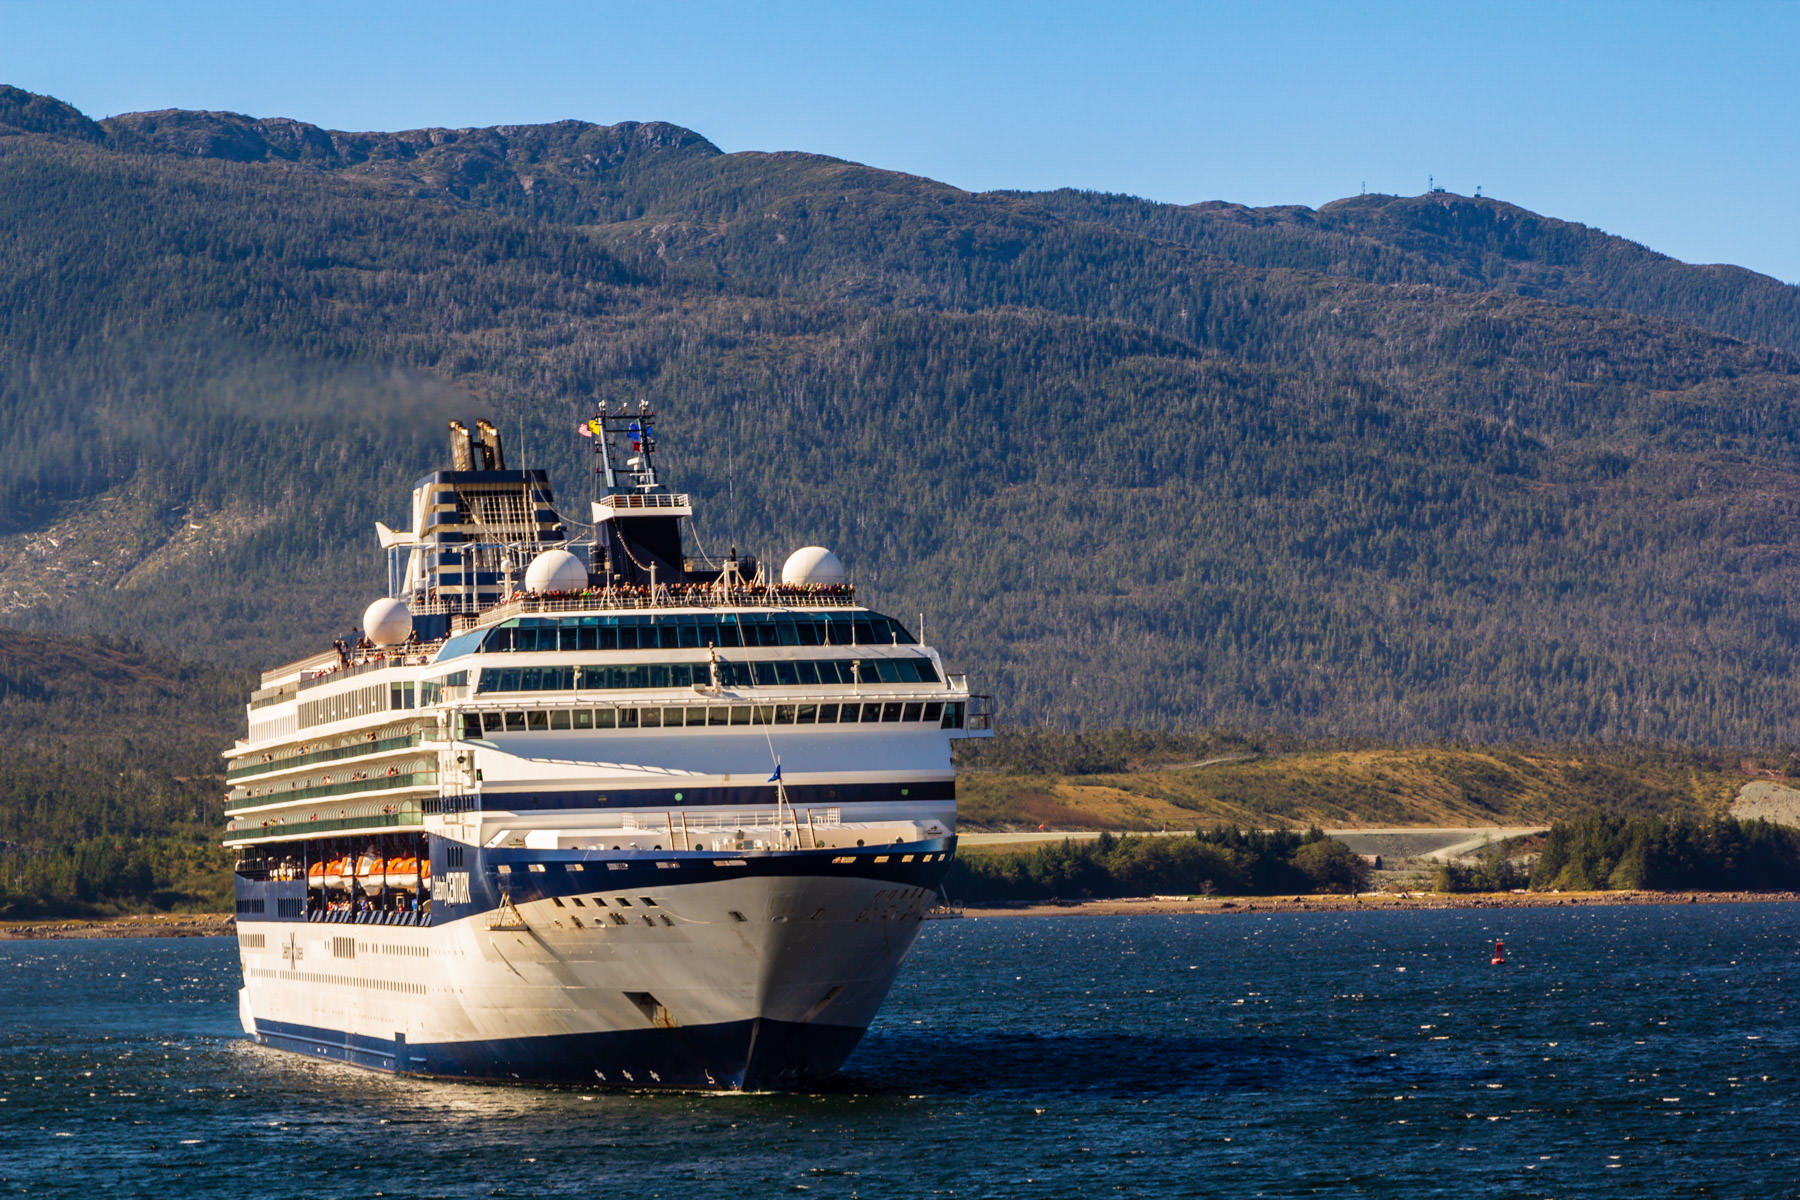 The cruise ship Celebrity Century sails into Ketchikan, Alaska.